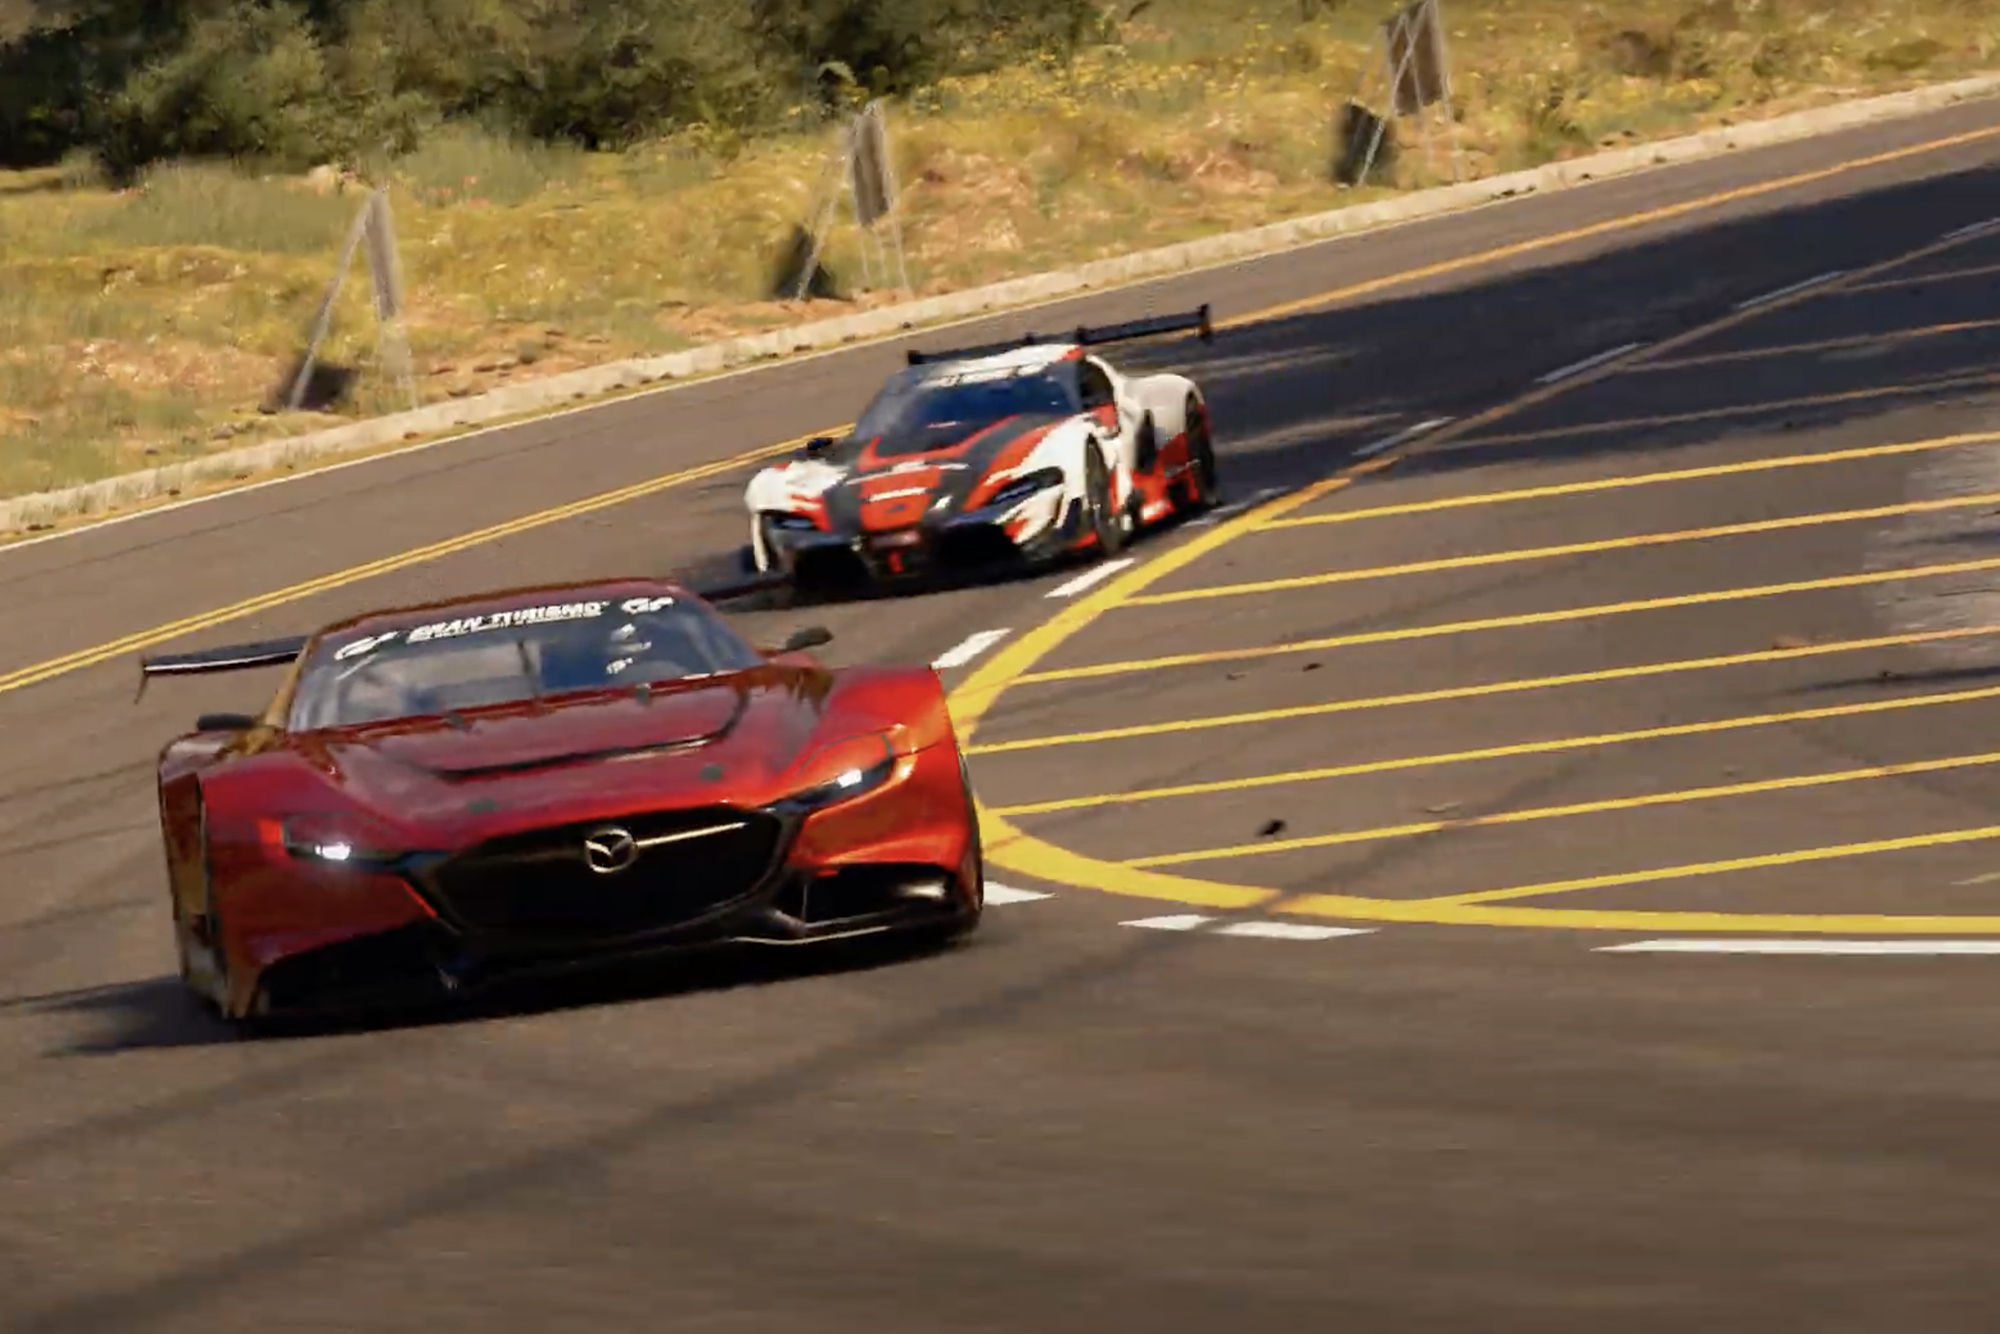 Video: Gran Turismo 7 revealed for PlayStation 5 - Motor Sport ...